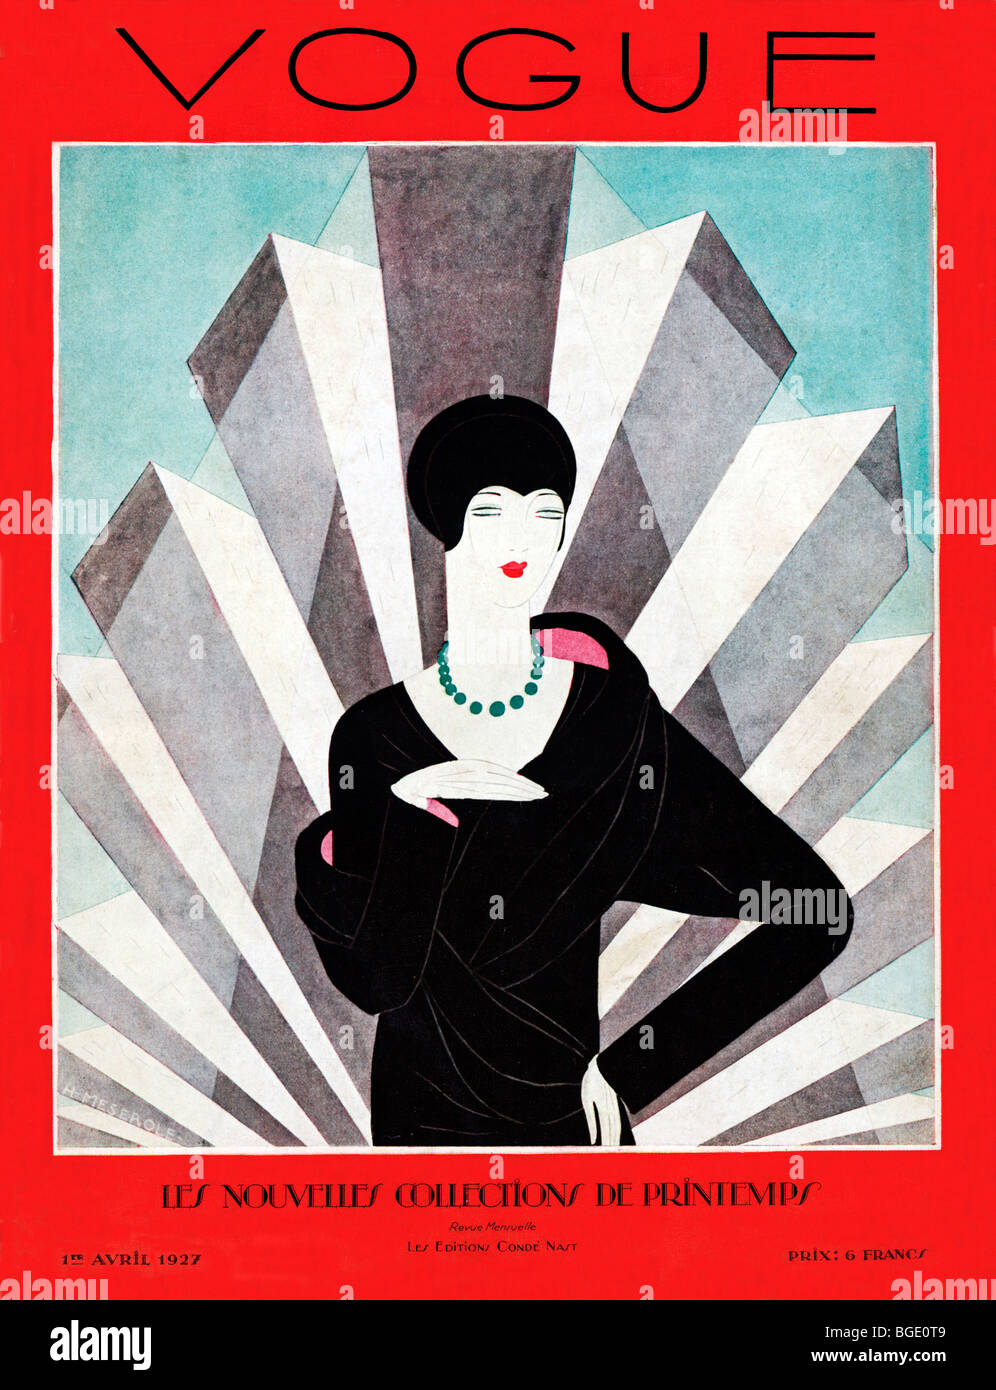 Vogue April 1927 Art Deco Cover Of The Fashion Magazine